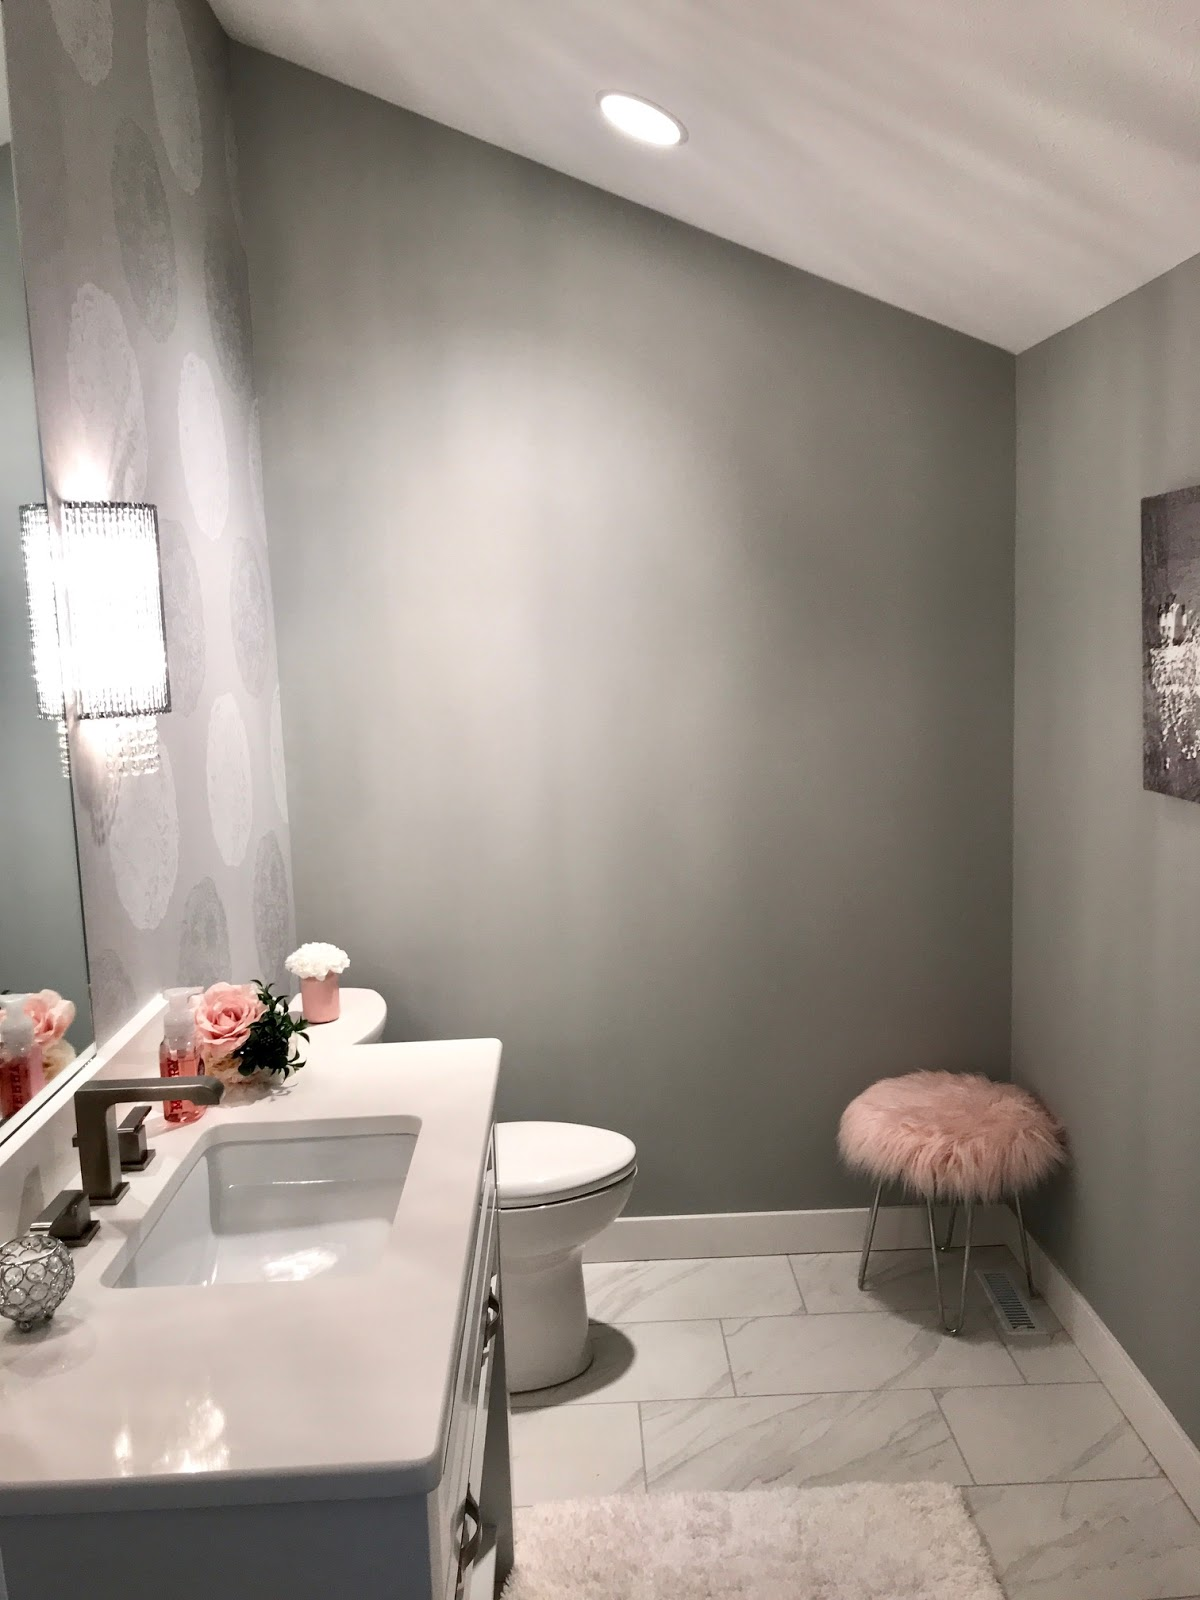 Just a little glam in this powder room. Gray and white with blush accents in this glamorous powder bath.